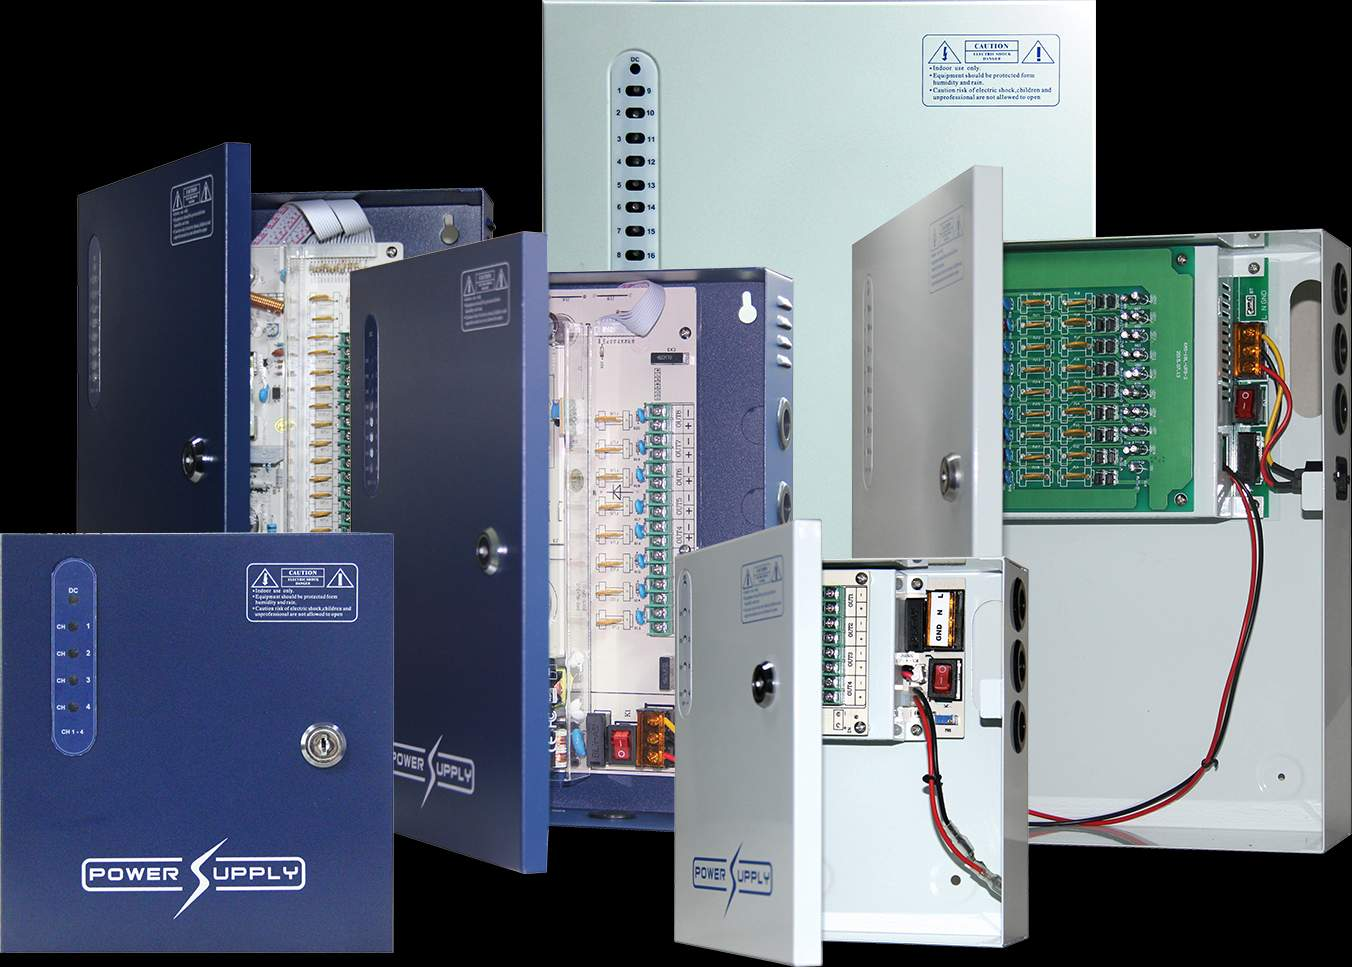 12VDC CCTV POWER SUPPLIES WITH SURGE PROTECTION